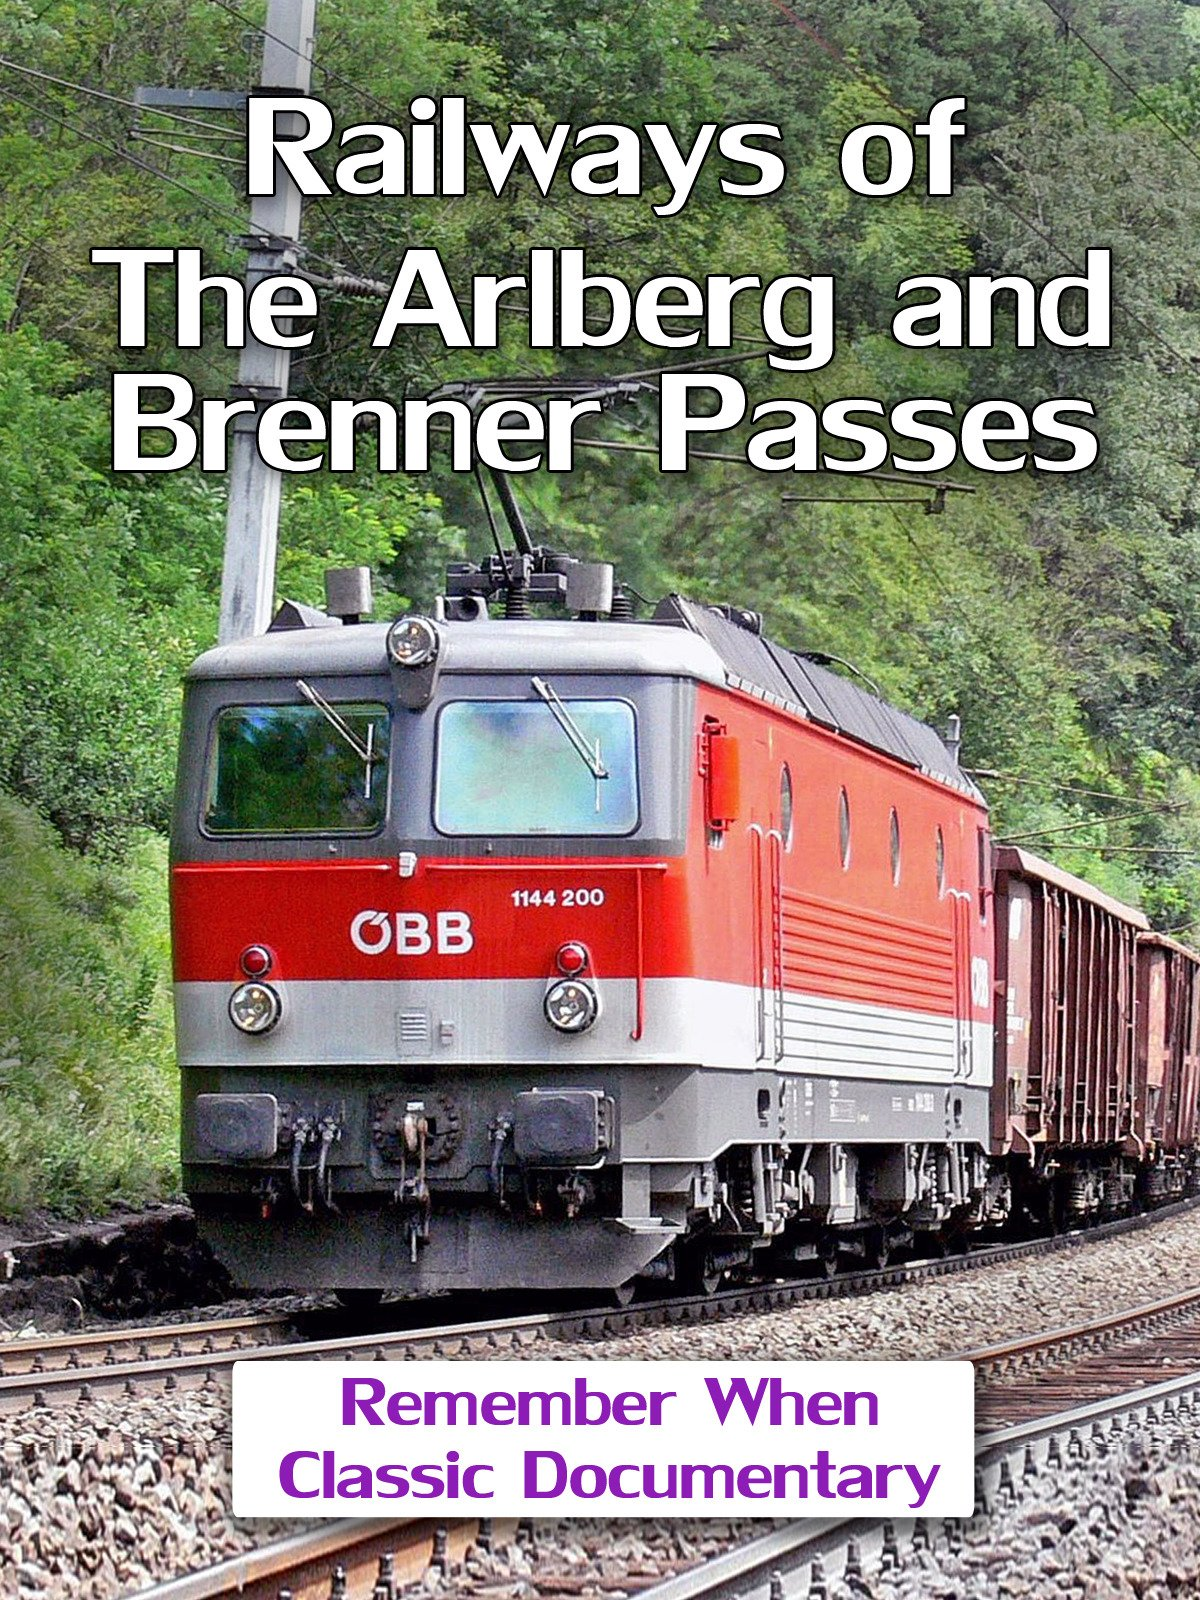 Railways of The Arlberg and Brenner Passes